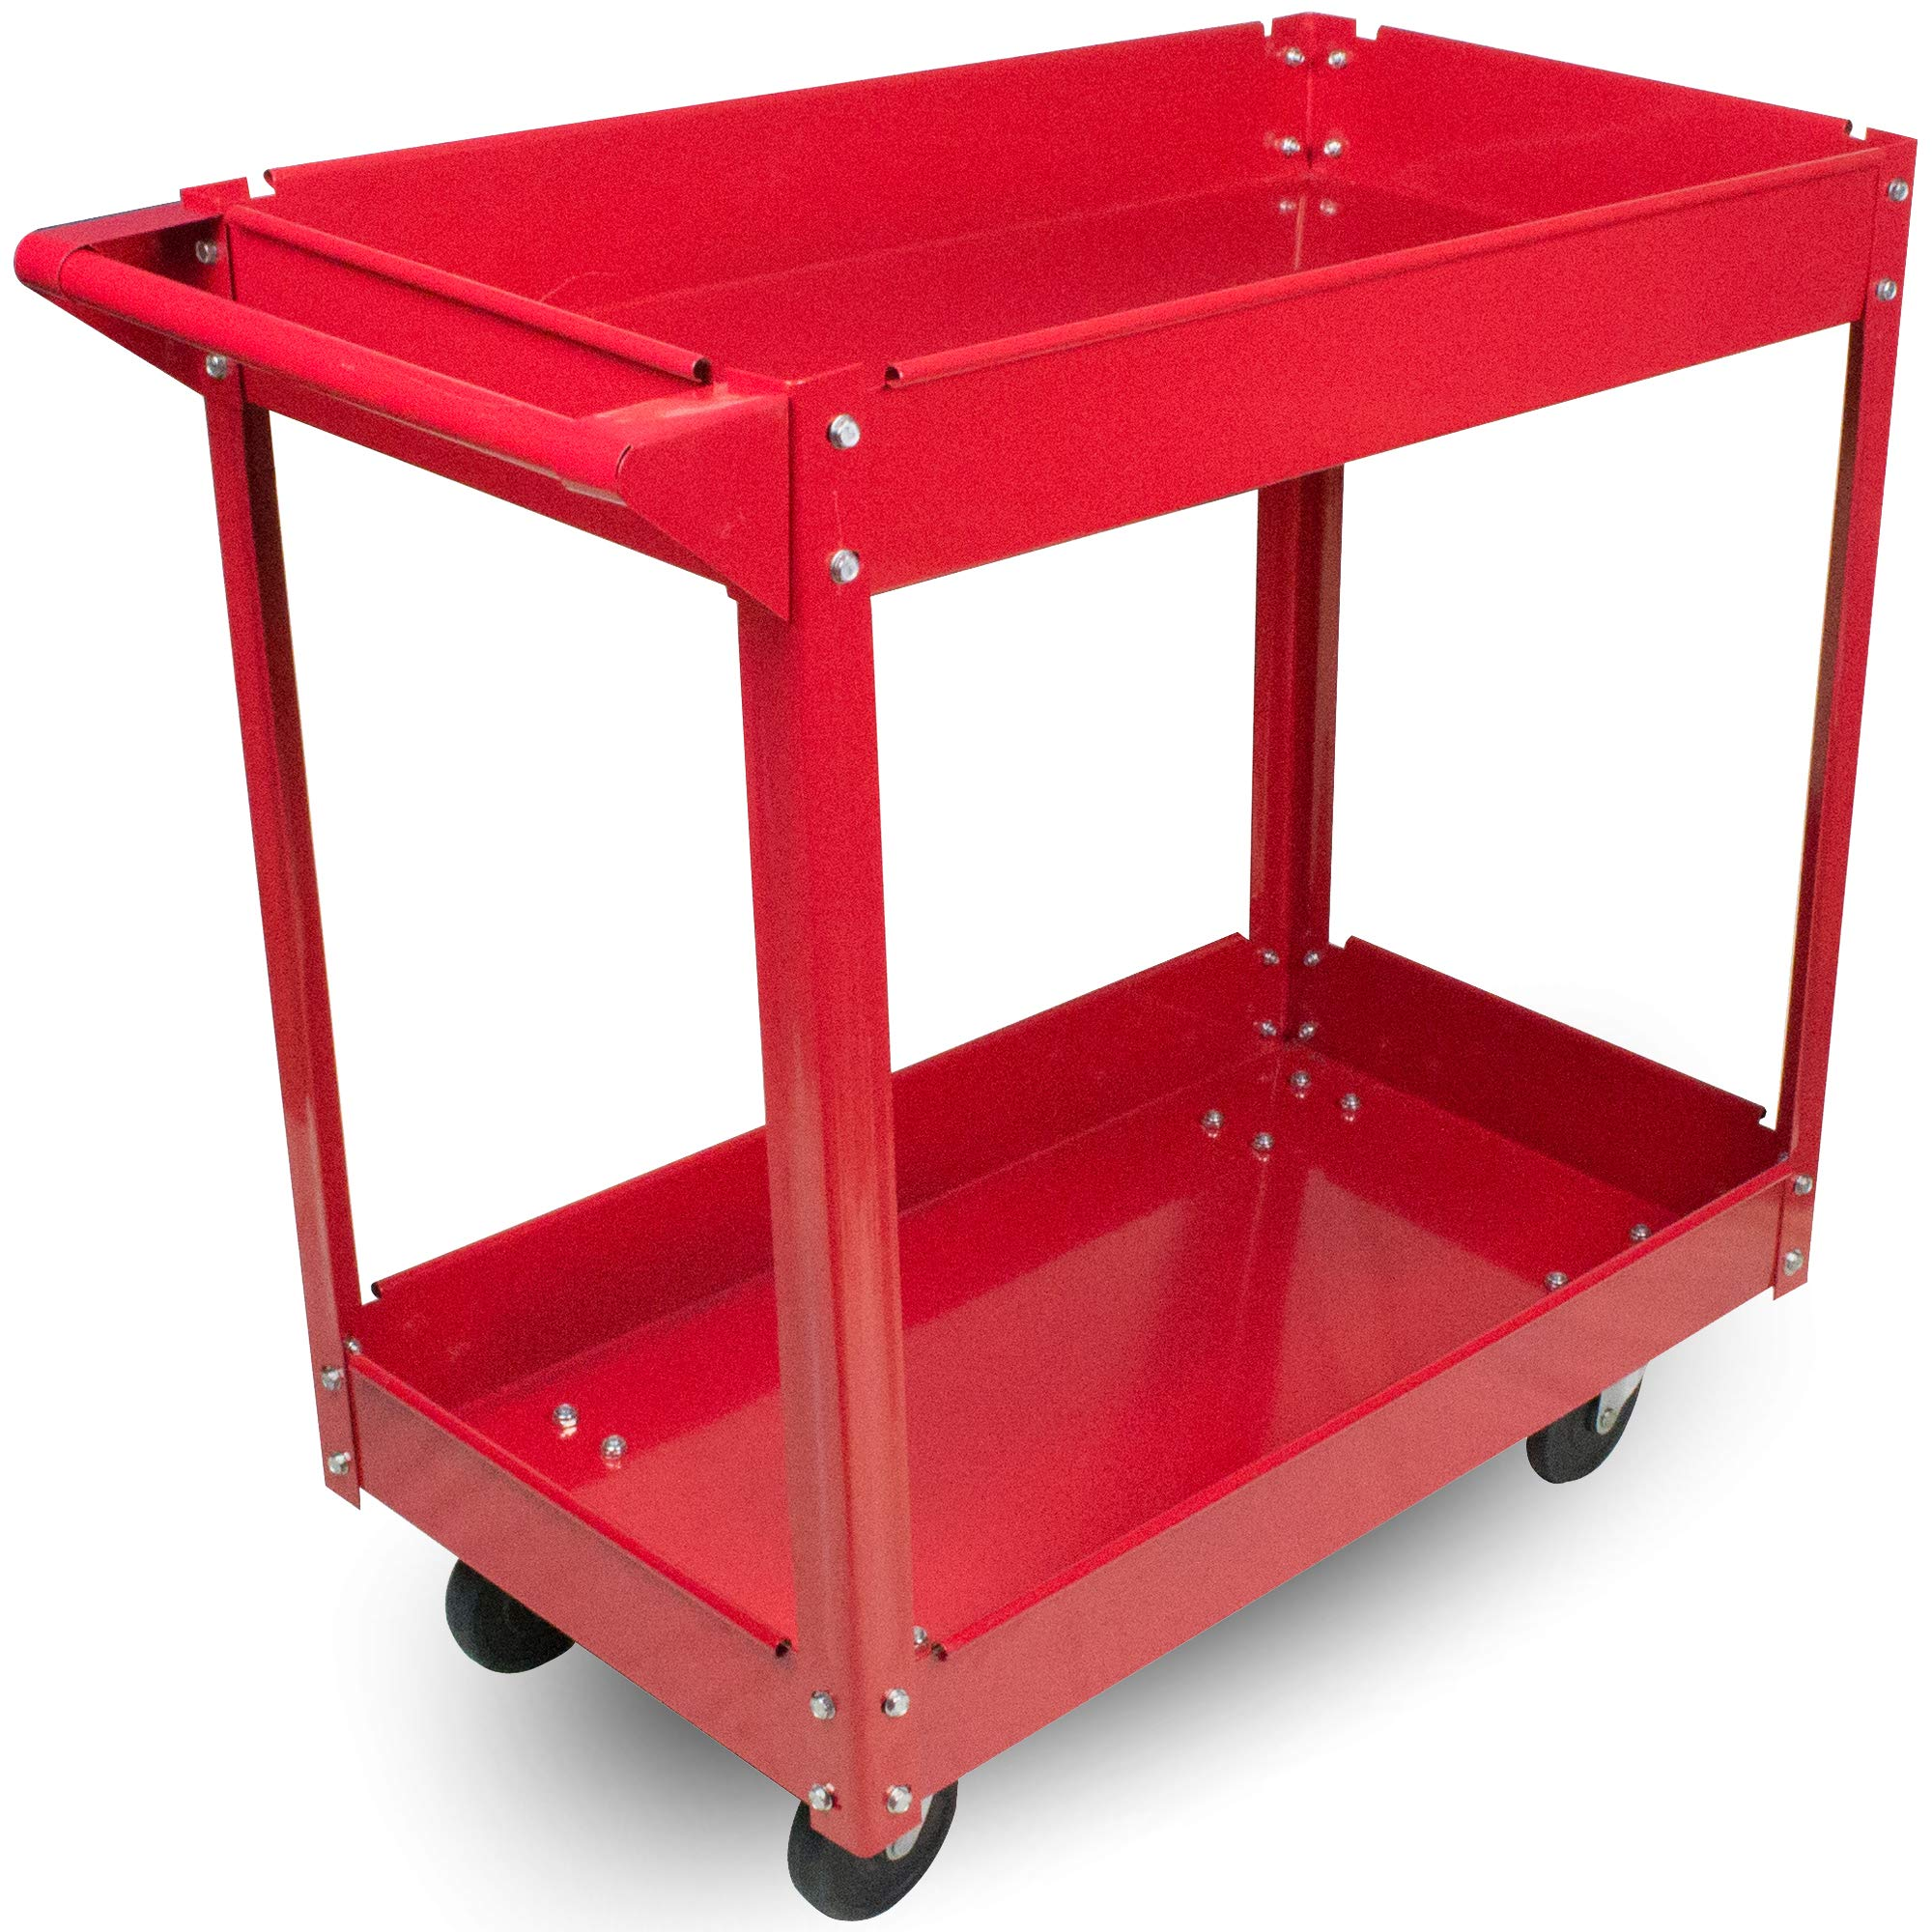 Metal Utility Cart - 33'' x 16'' x 31'' Rolling Tool Cart with Wheels for Shop or Storage or Garage - 2 Shelf Red BW1452 by BUNKERWALL (Image #1)